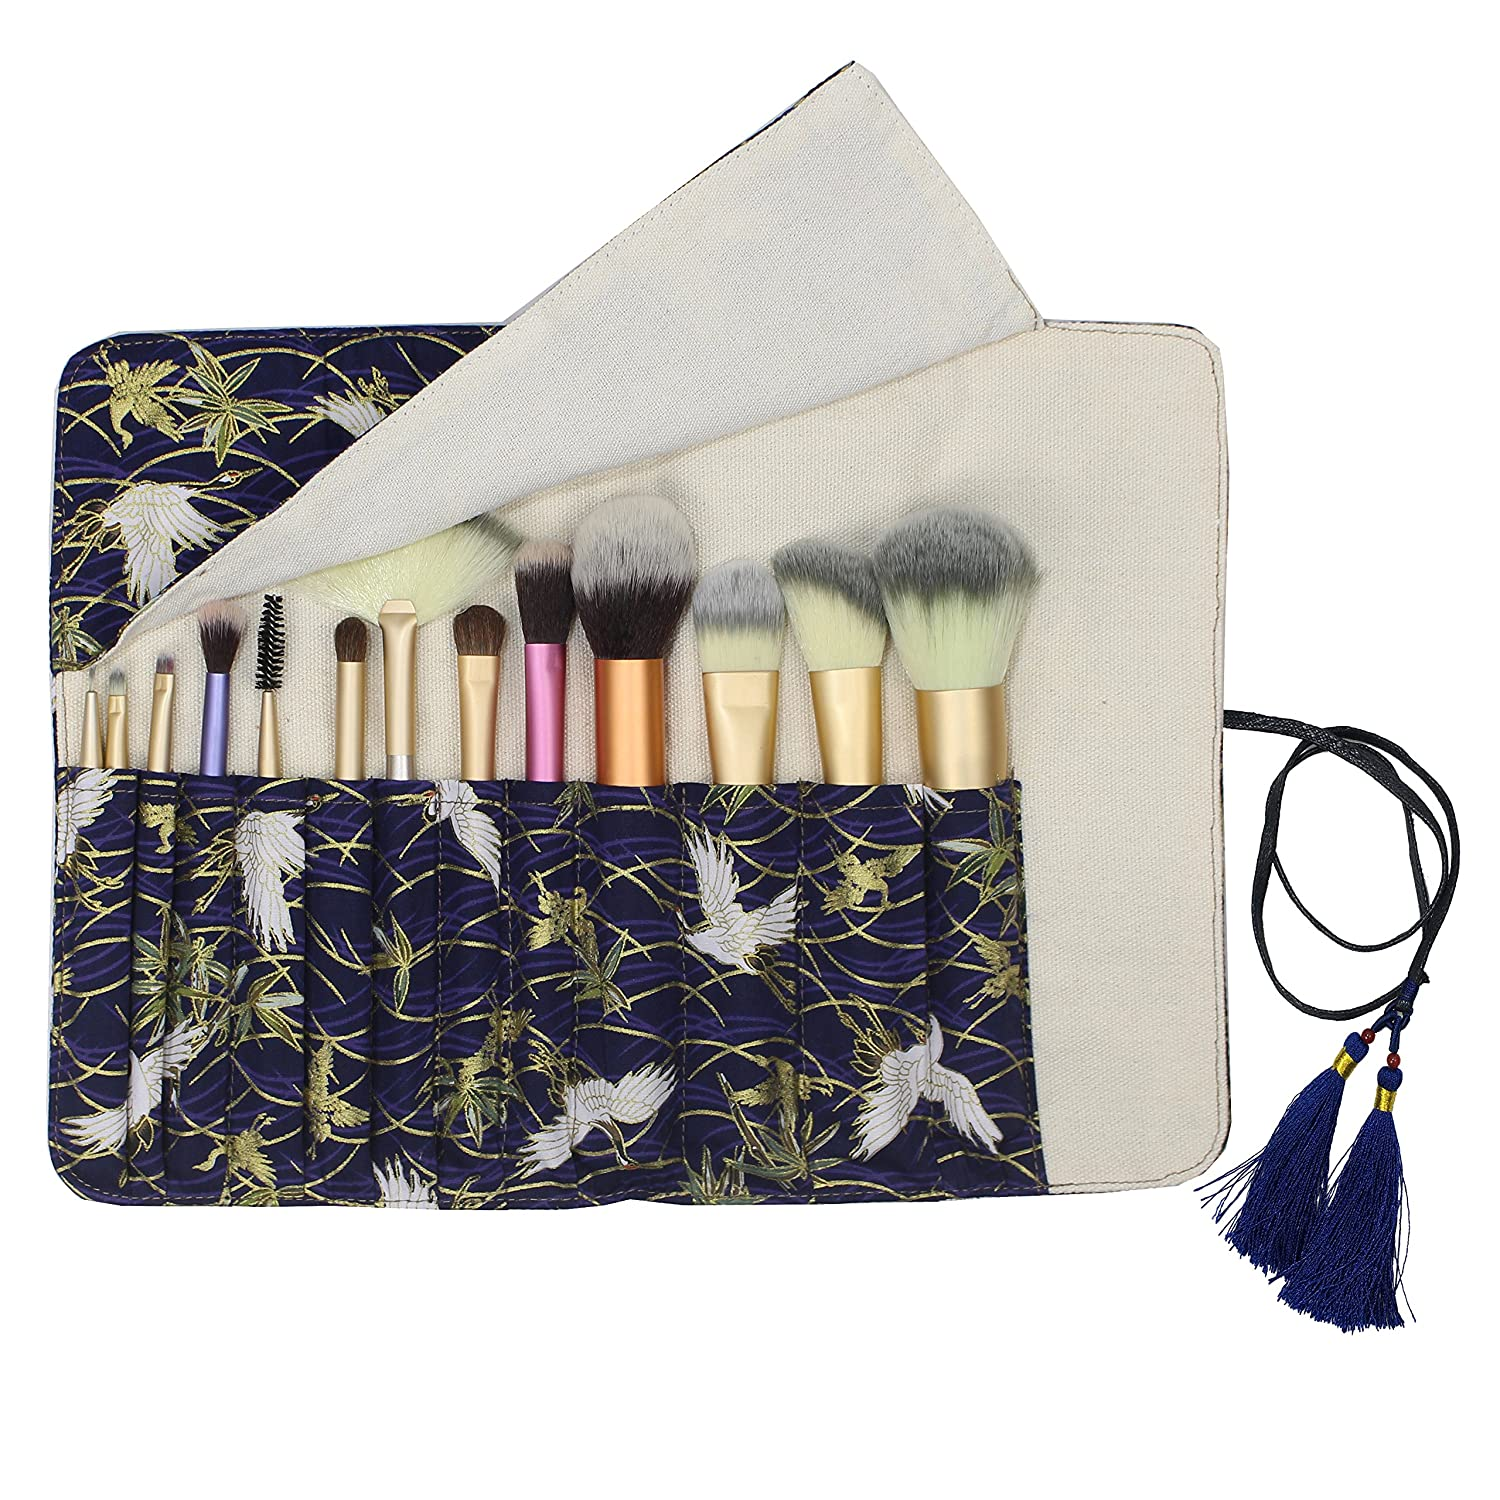 12 Pockets Makeup Brushes Rolling Case Pouch Holder Cosmetic Bag Organizer Case with Belt Strap, NO BRUSHES (Gilded Crane)